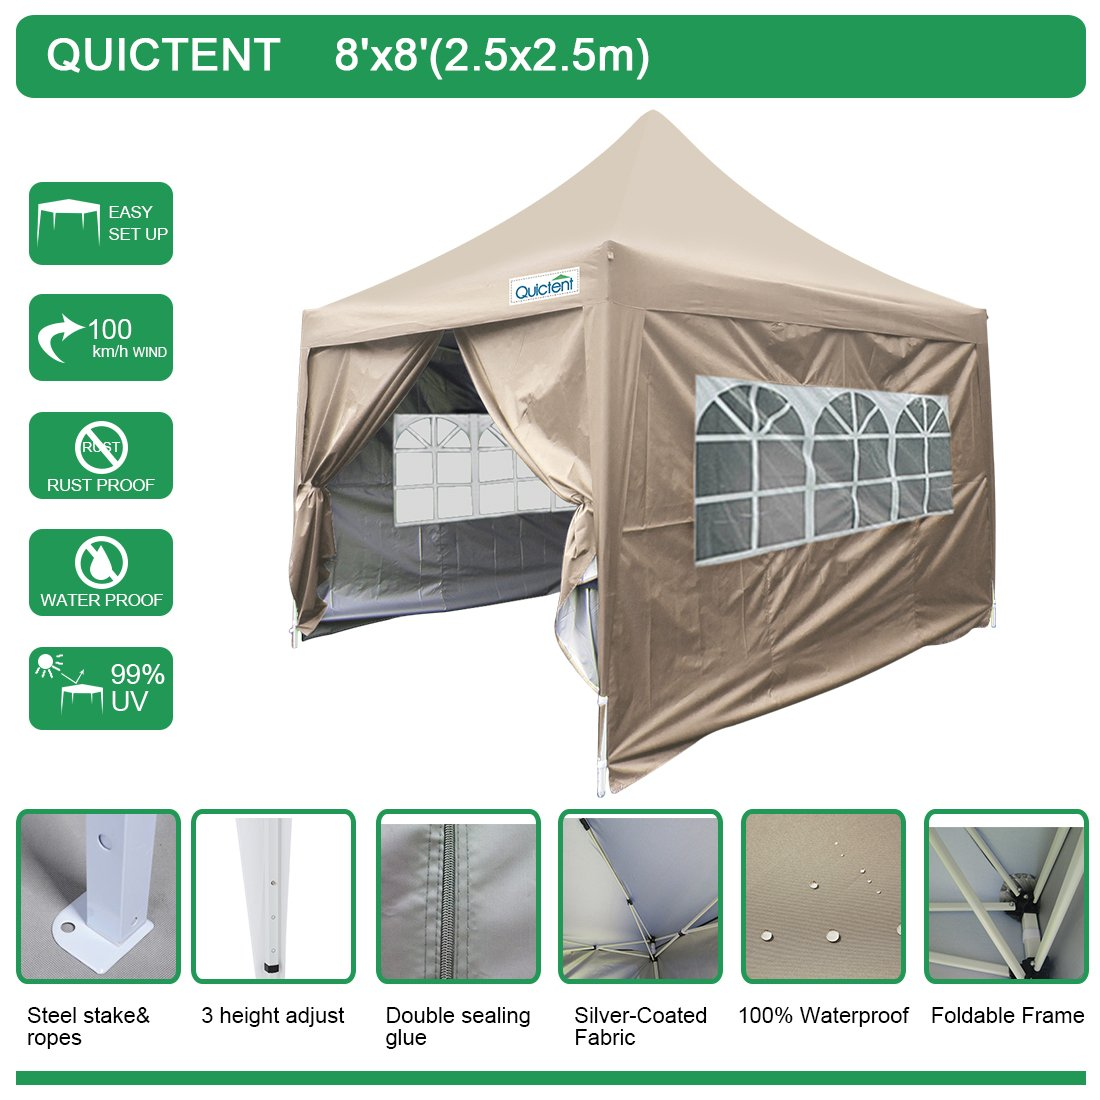 Quictent Silvox Waterproof 8x8' EZ Pop Up Canopy Gazebo Party Tent Portable Pyramid-roofed Waterproof-7 colors(Beige) by Quictent (Image #5)